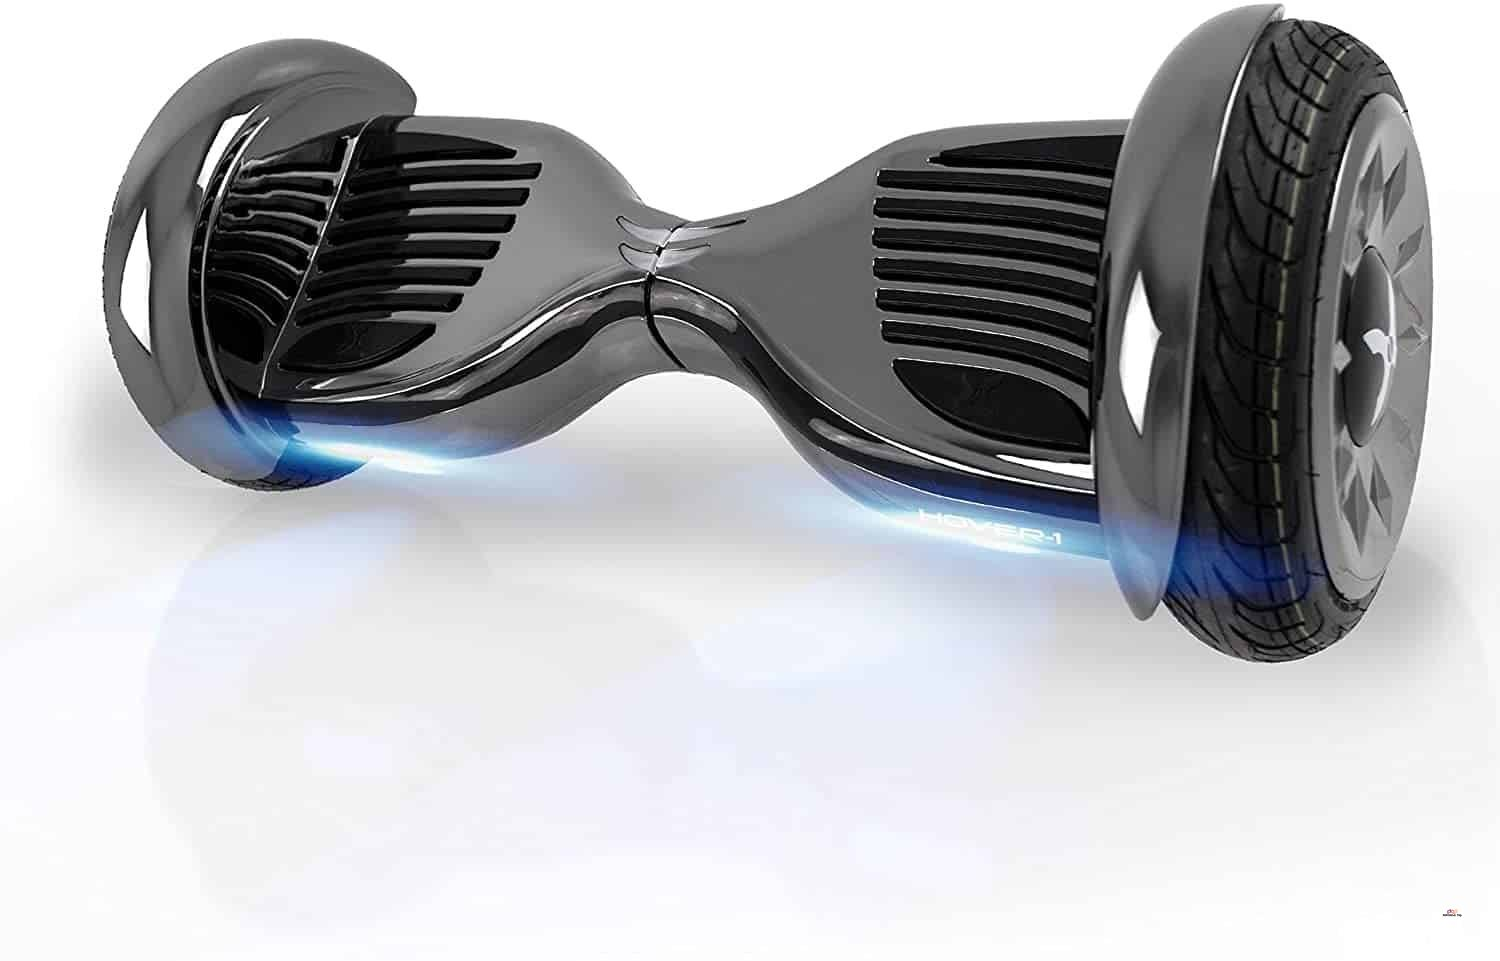 Hover 1 Titan Electric Self-Balancing Hoverboard Scooter